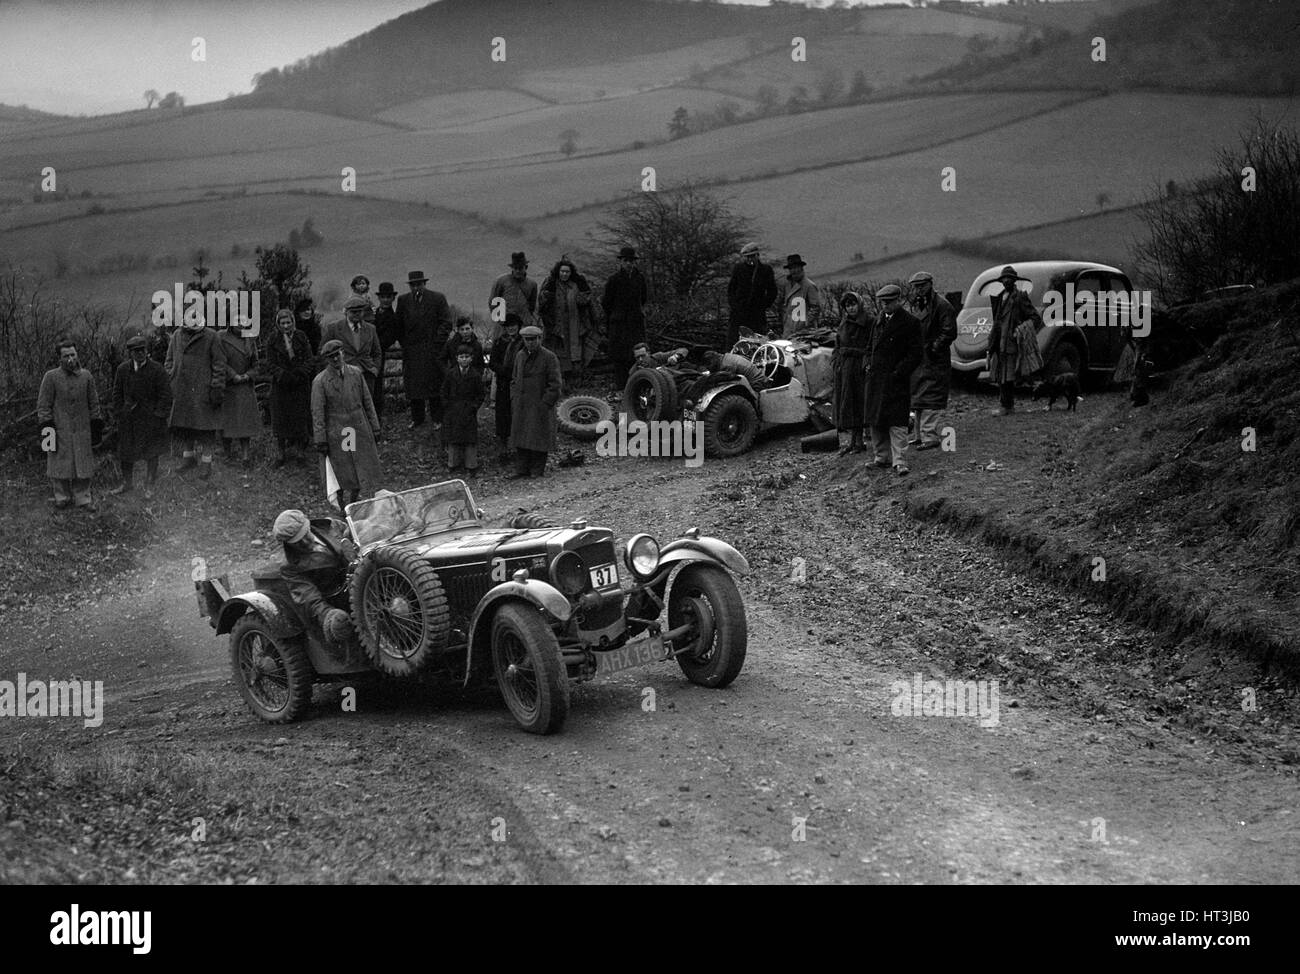 Frazer-Nash TT replica of TN Clare competing in the MG Car Club Midland Centre Trial, 1938. Artist: Bill Brunell. - Stock Image